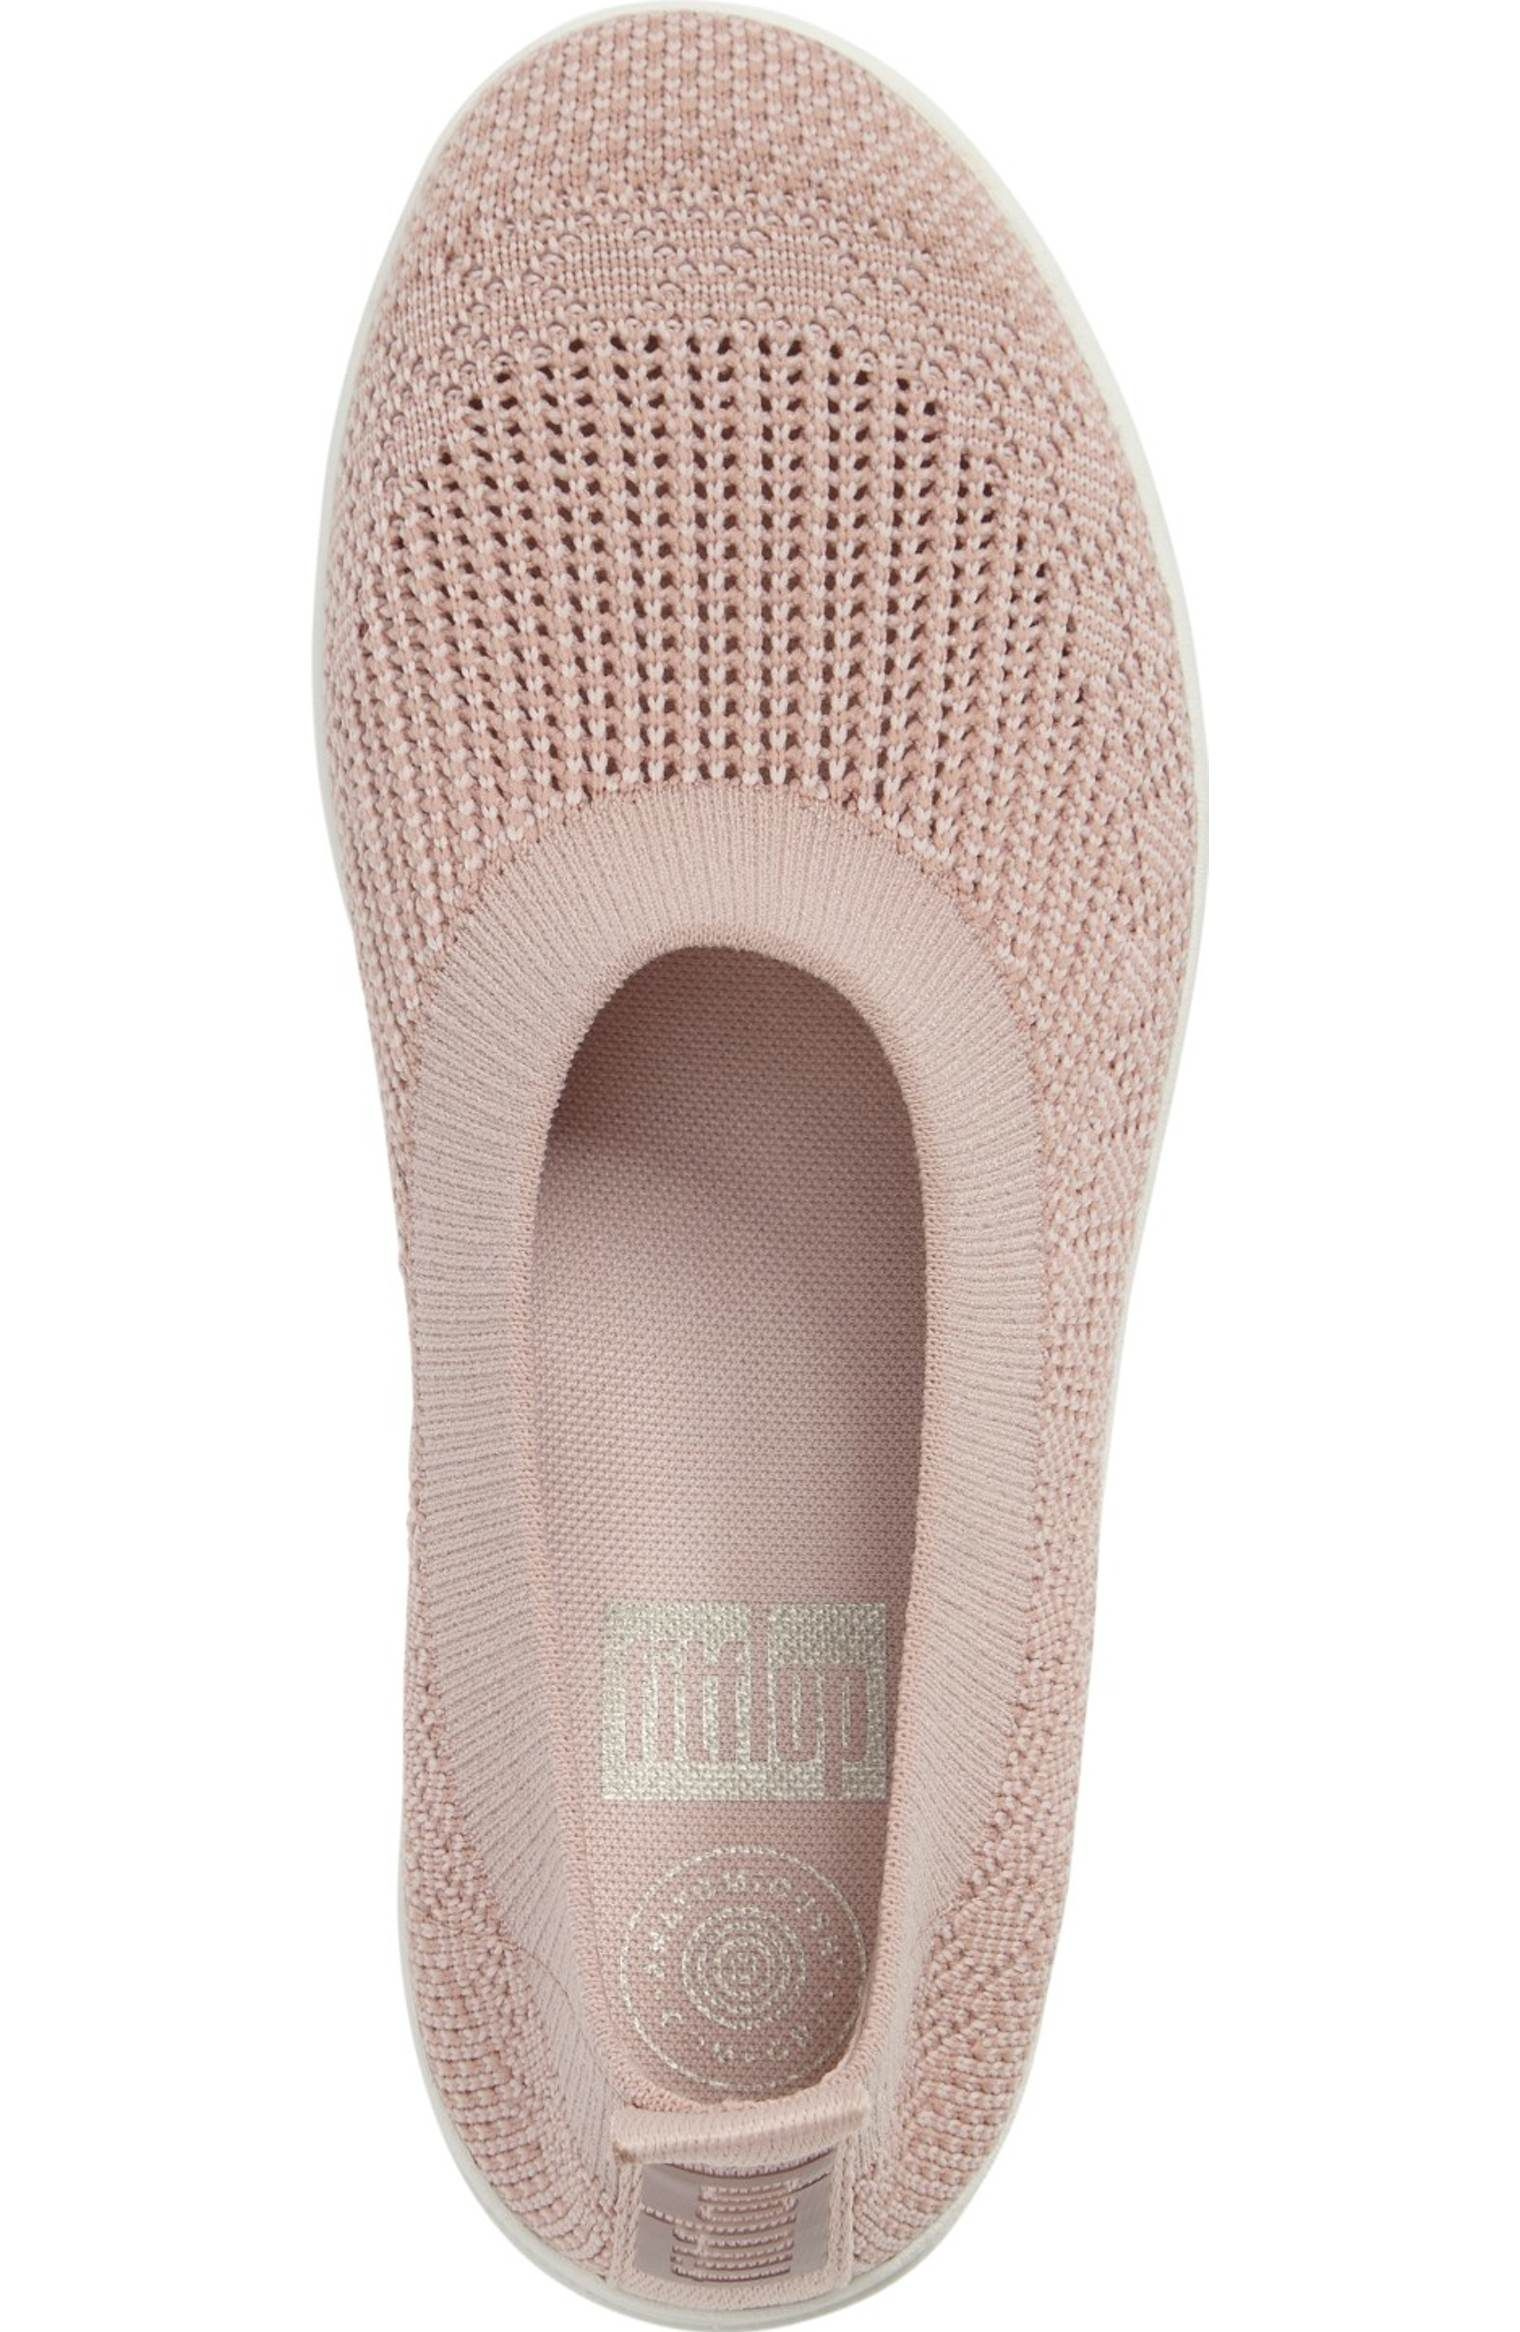 9c0e48ad47 Fitflop Uberknit! Looks like it would be forgiving of bunions and ...